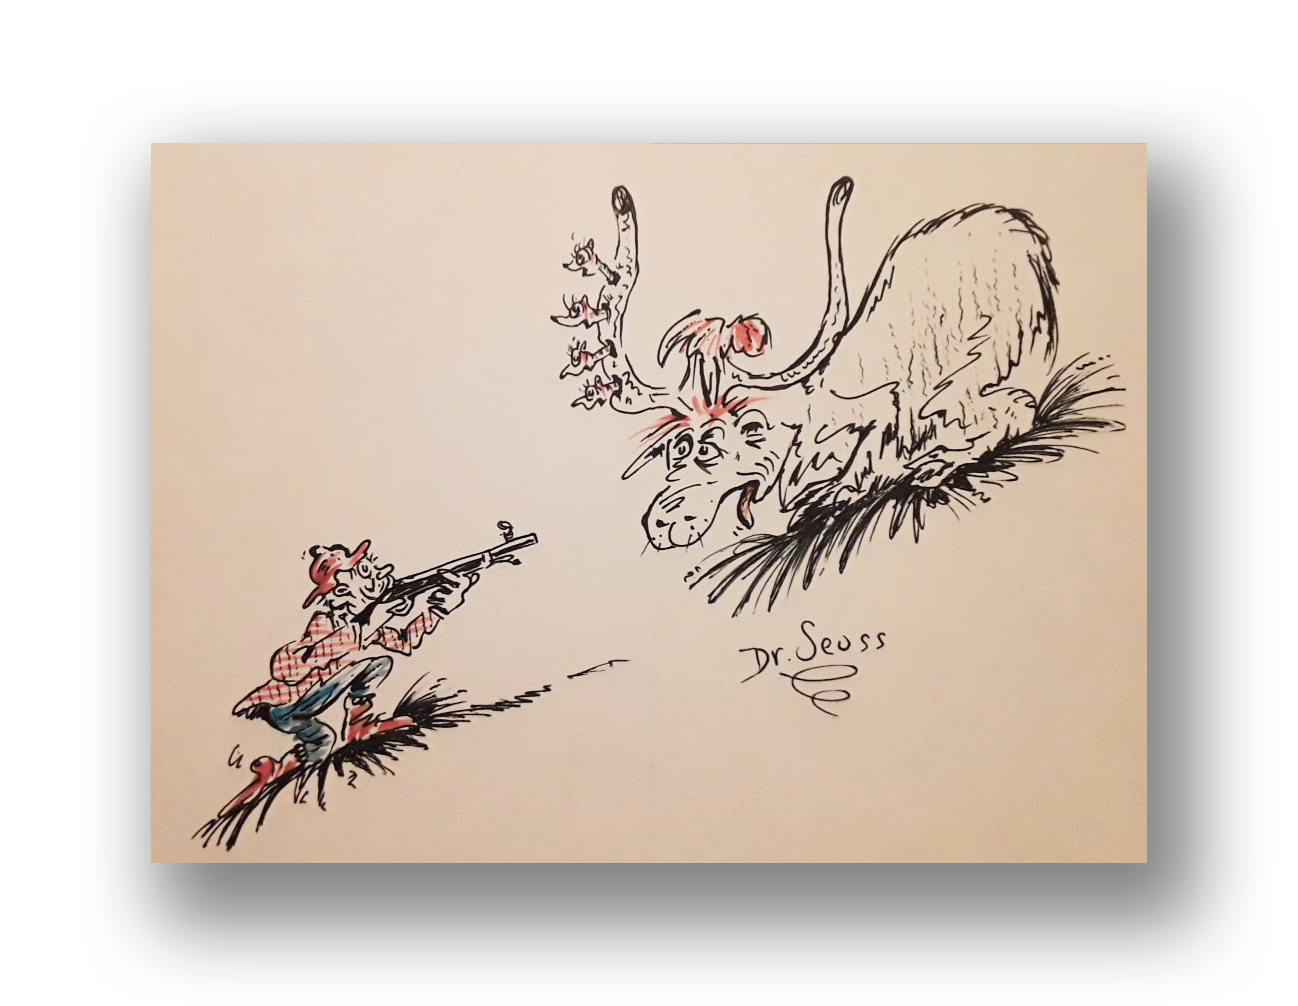 Thidwick the Big Hearted Moose  Reference - similar illustration as found mid-book Ink and watercolor on paper 6.5 x 8.5 inches Late 1950's - Early 1960's